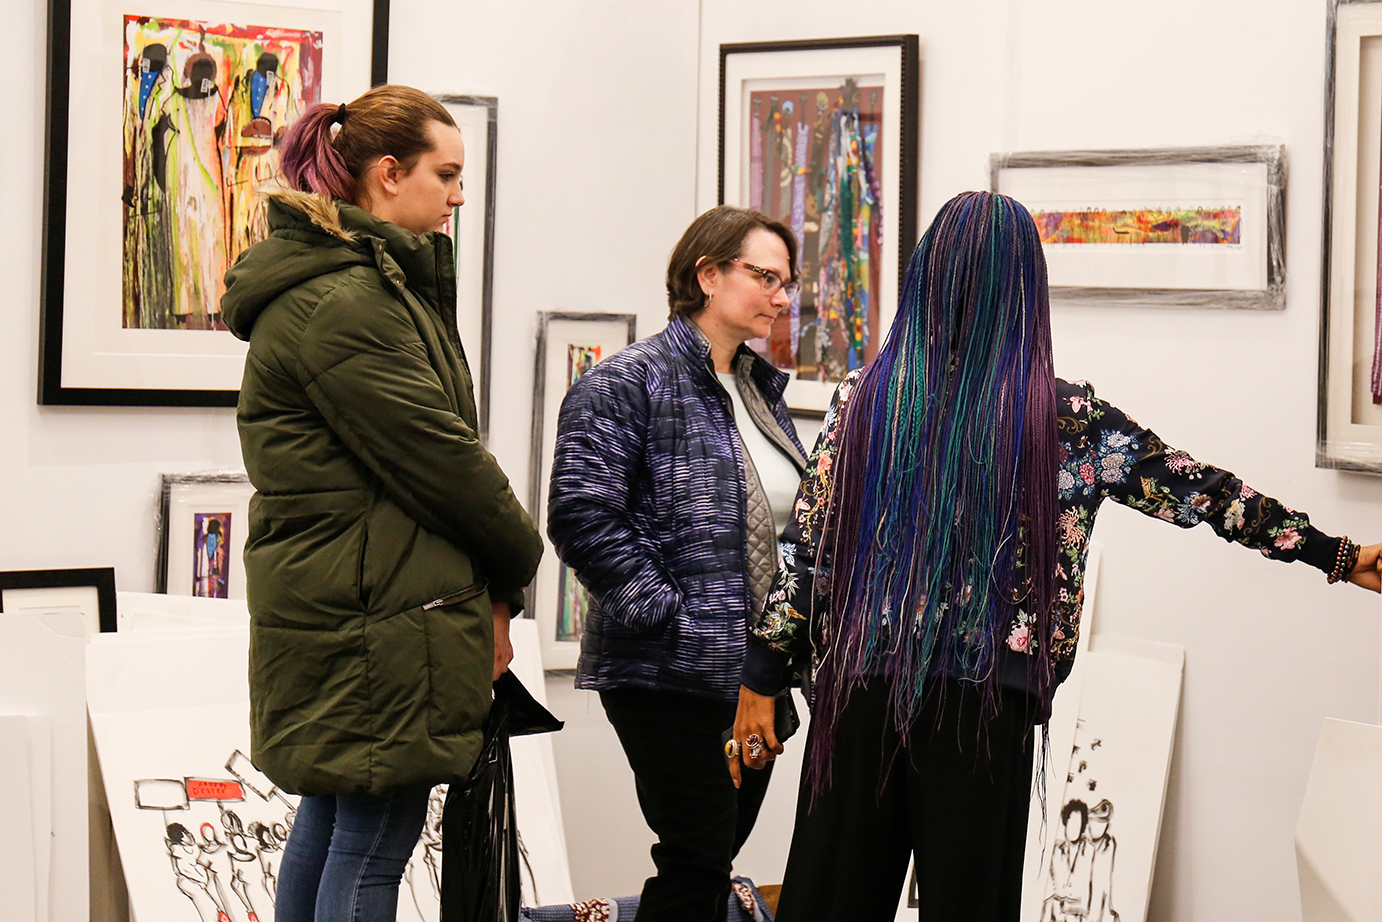 Guests engaging with art and artist